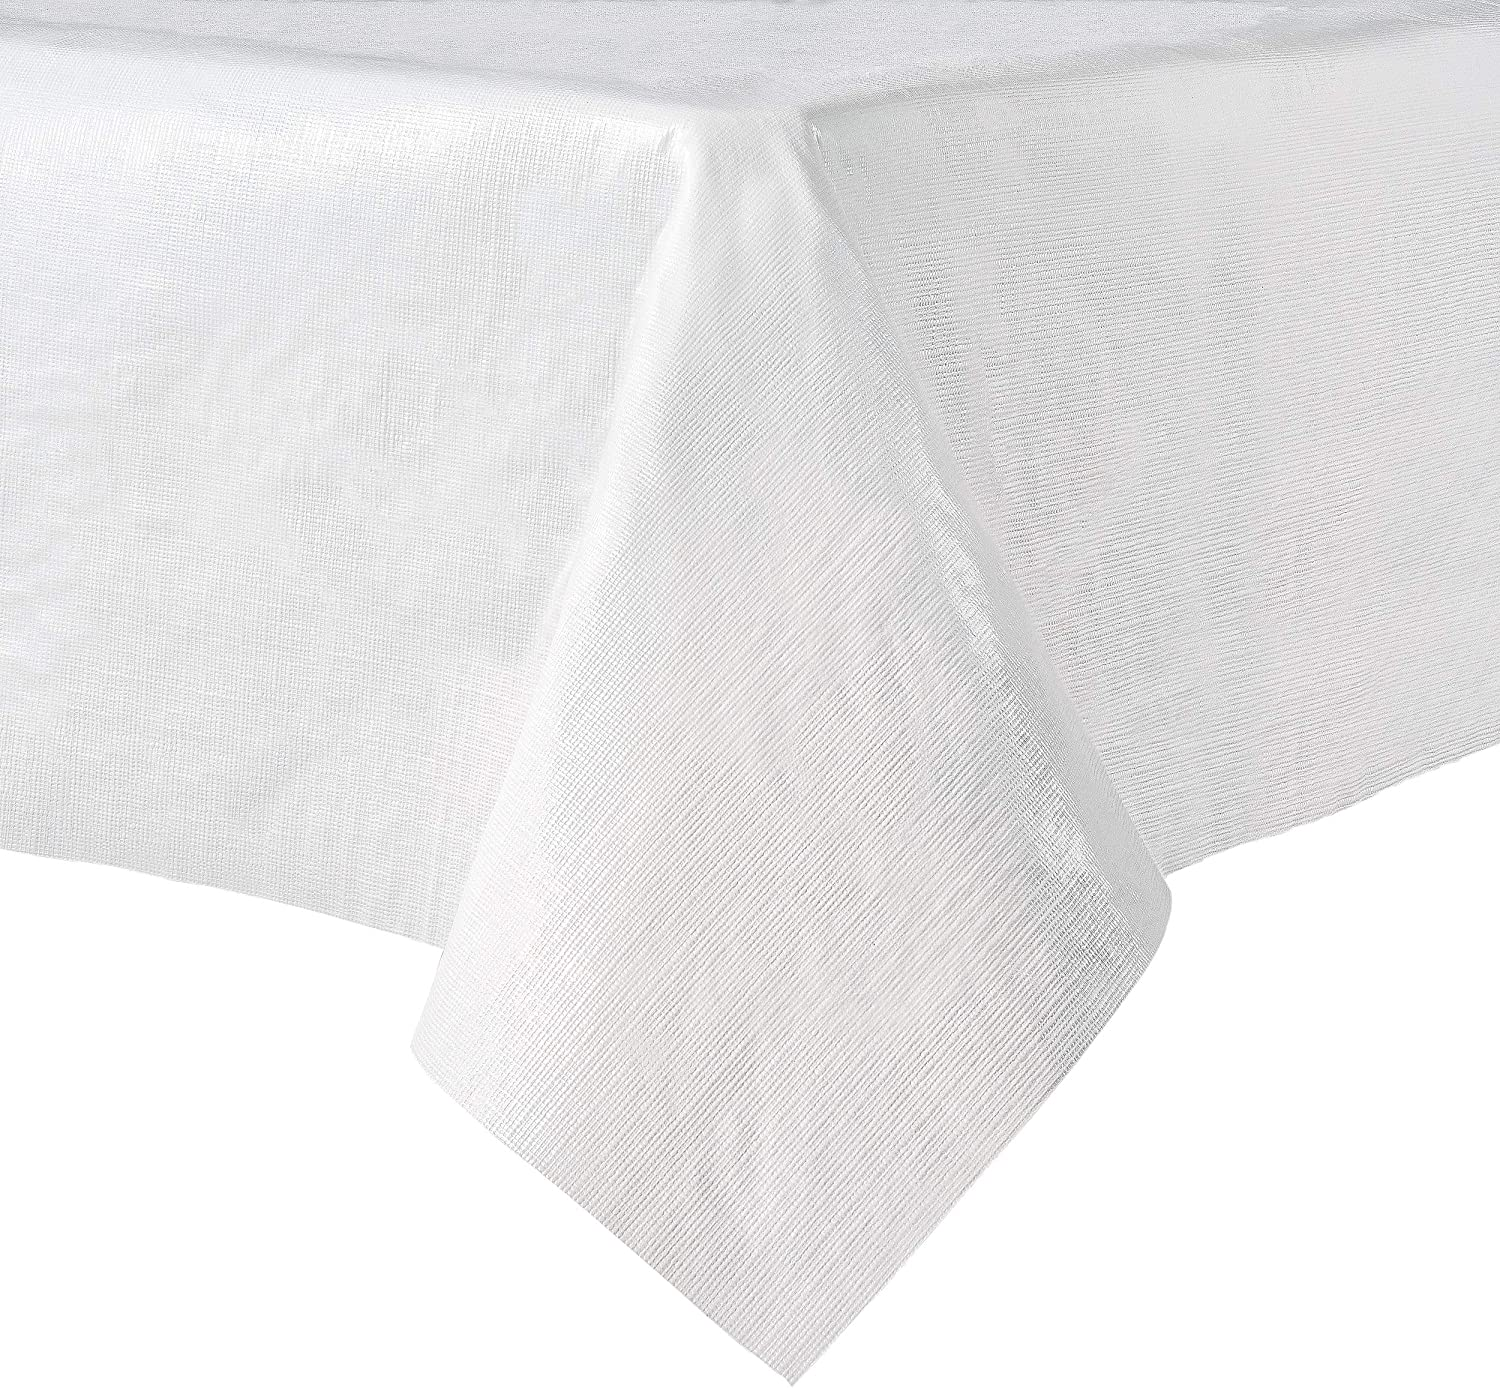 Sultan's Linens Extra Padding Table Pad Waterproof with Superior Protection (52 Inch x 144 Inch): Home & Kitchen